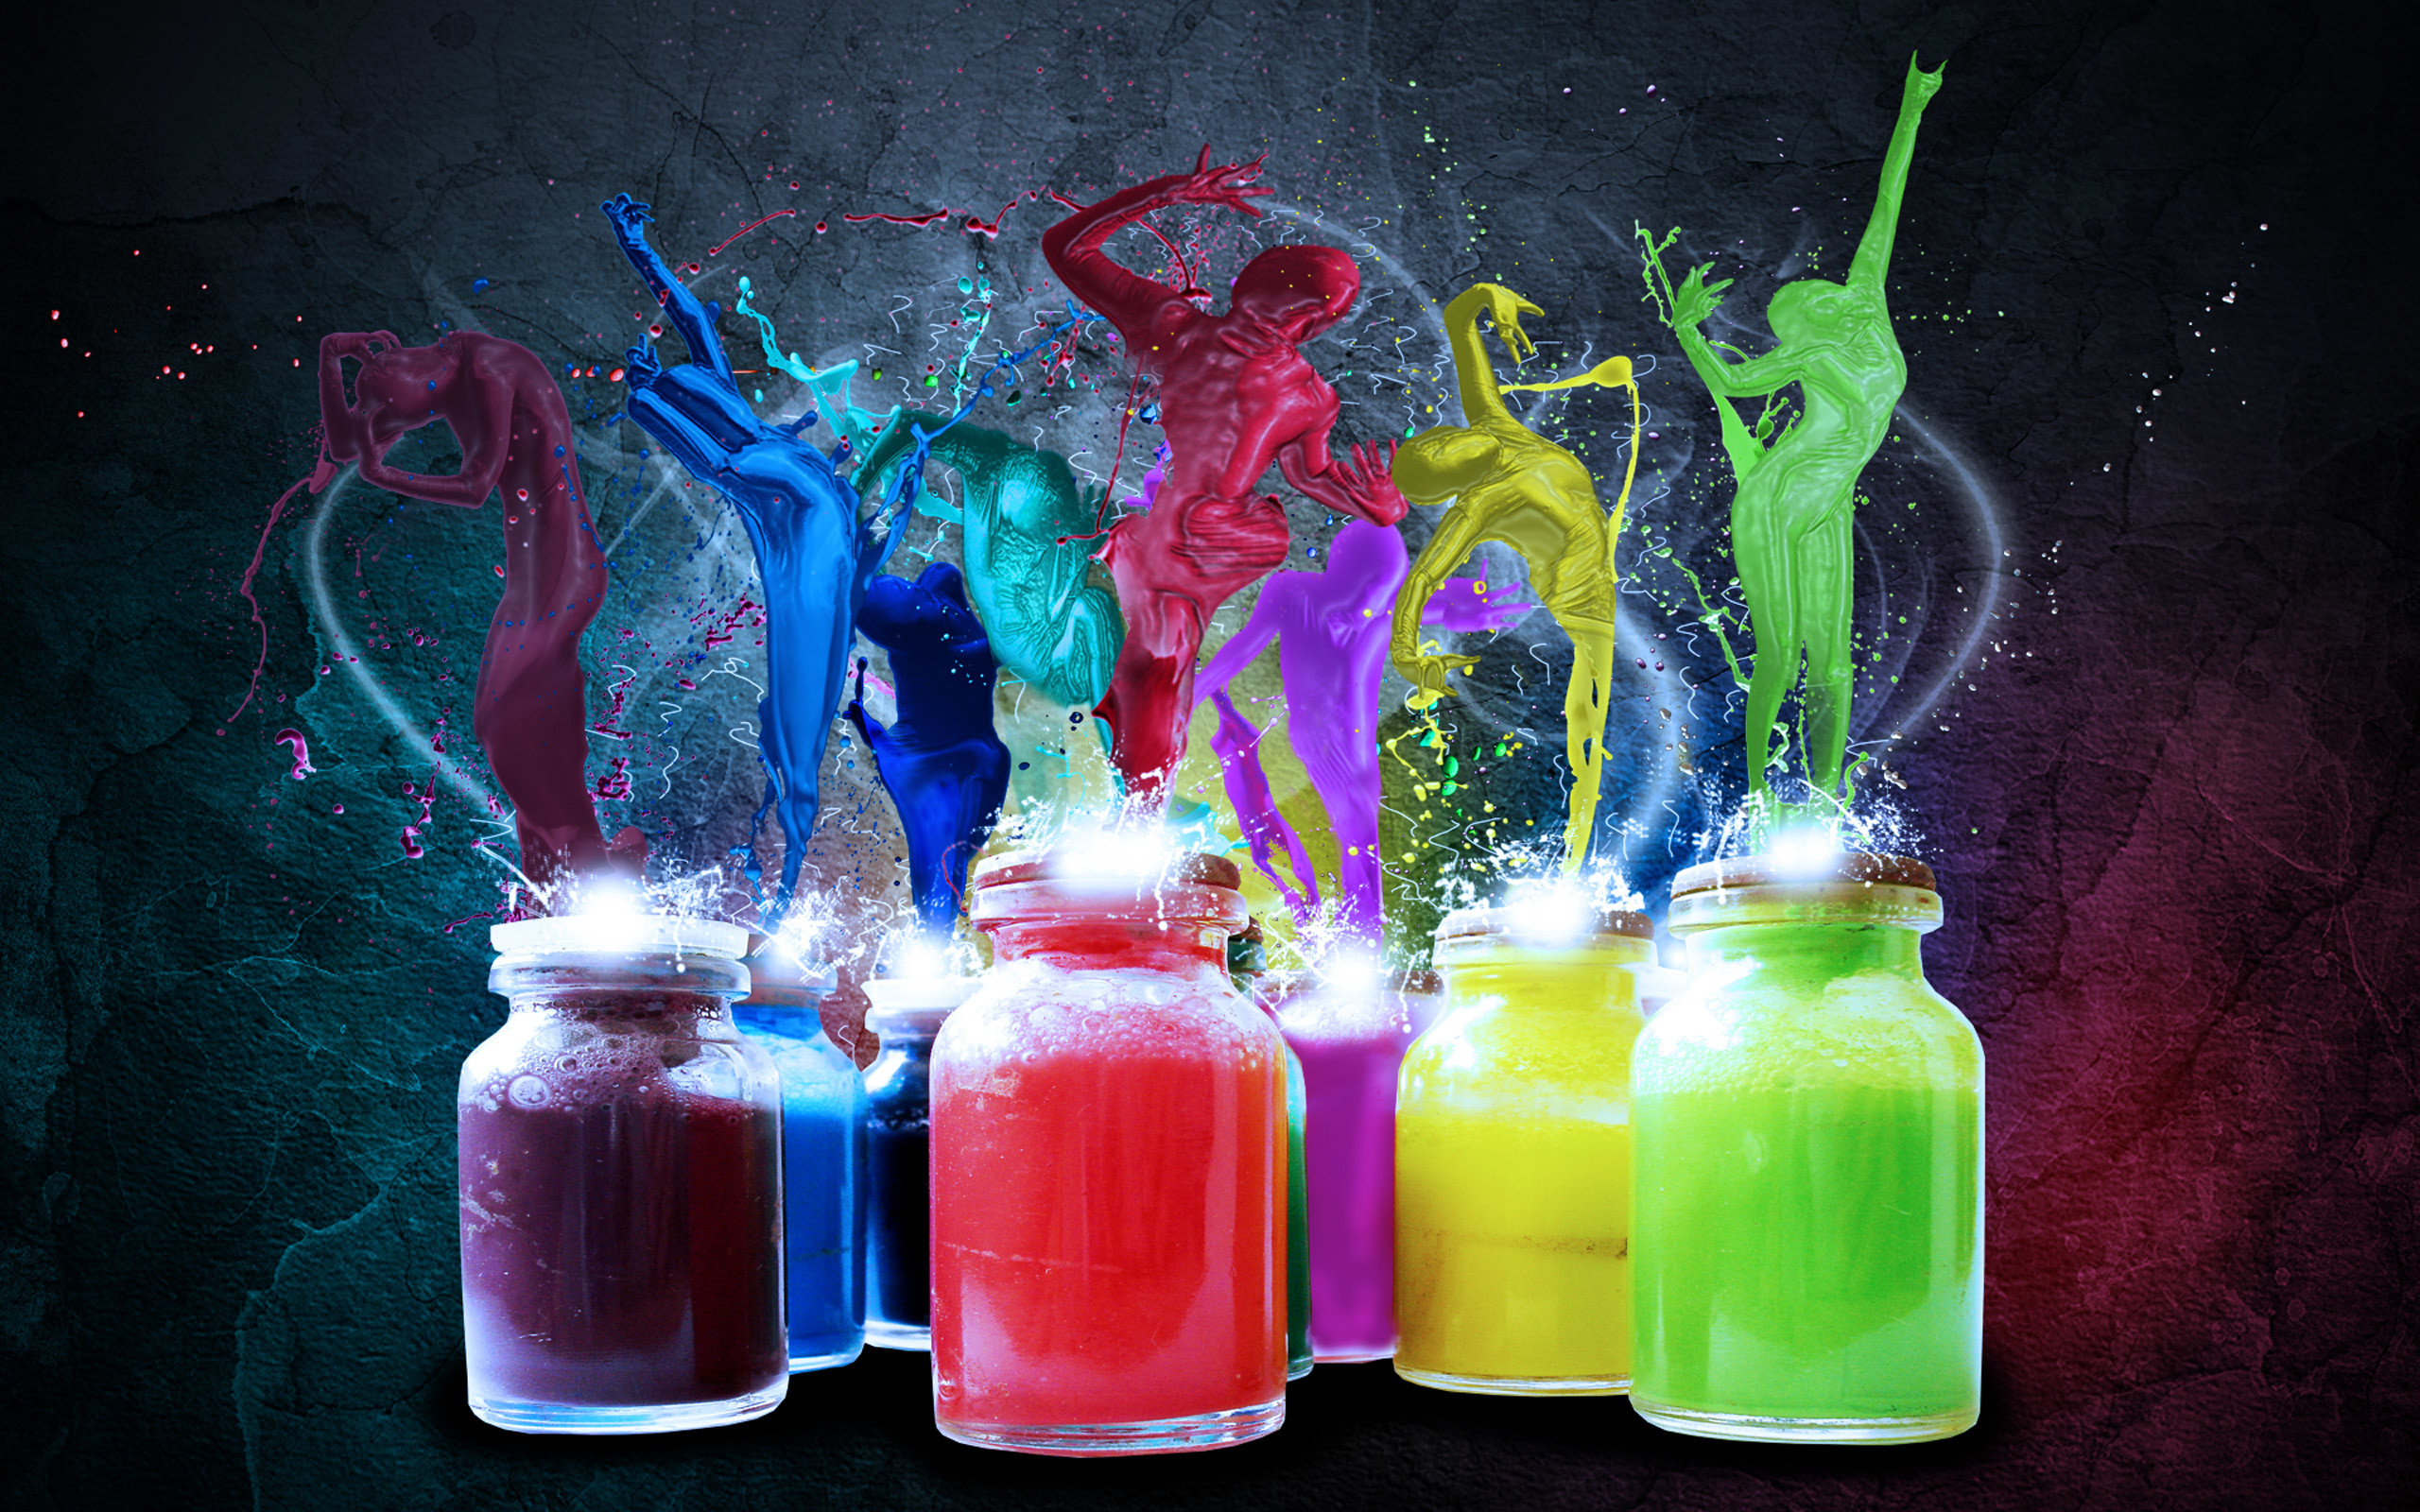 Hd Wallpaper - Colorful Images High Resolution - HD Wallpaper